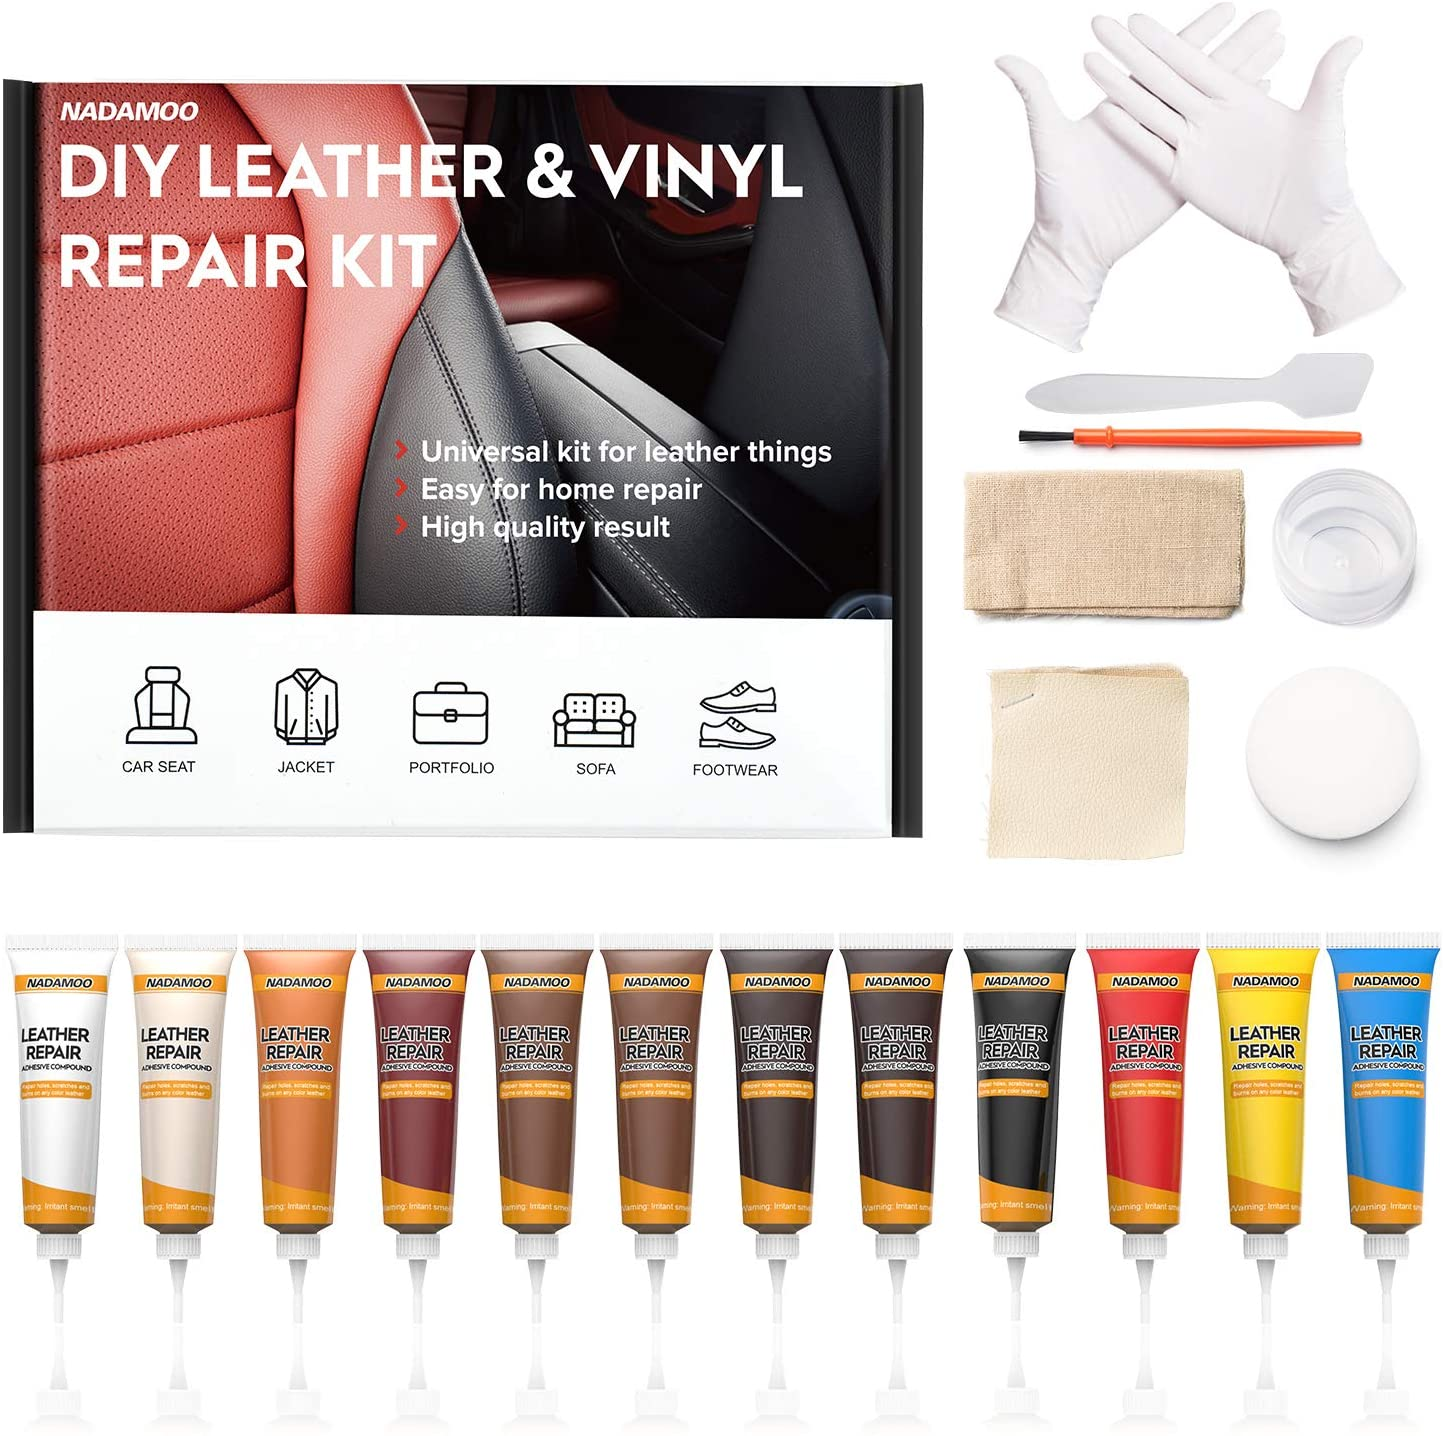 NADAMOO Leather Repair Kit for Couches, Vinyl Repair Kit for Furniture, Car Seats, Sofa, Jacket, Purse, Belt, Shoes, Boat - Scratch Filler Leather Care DIY Leather Fix Kit Repairs Tears Burn Holes